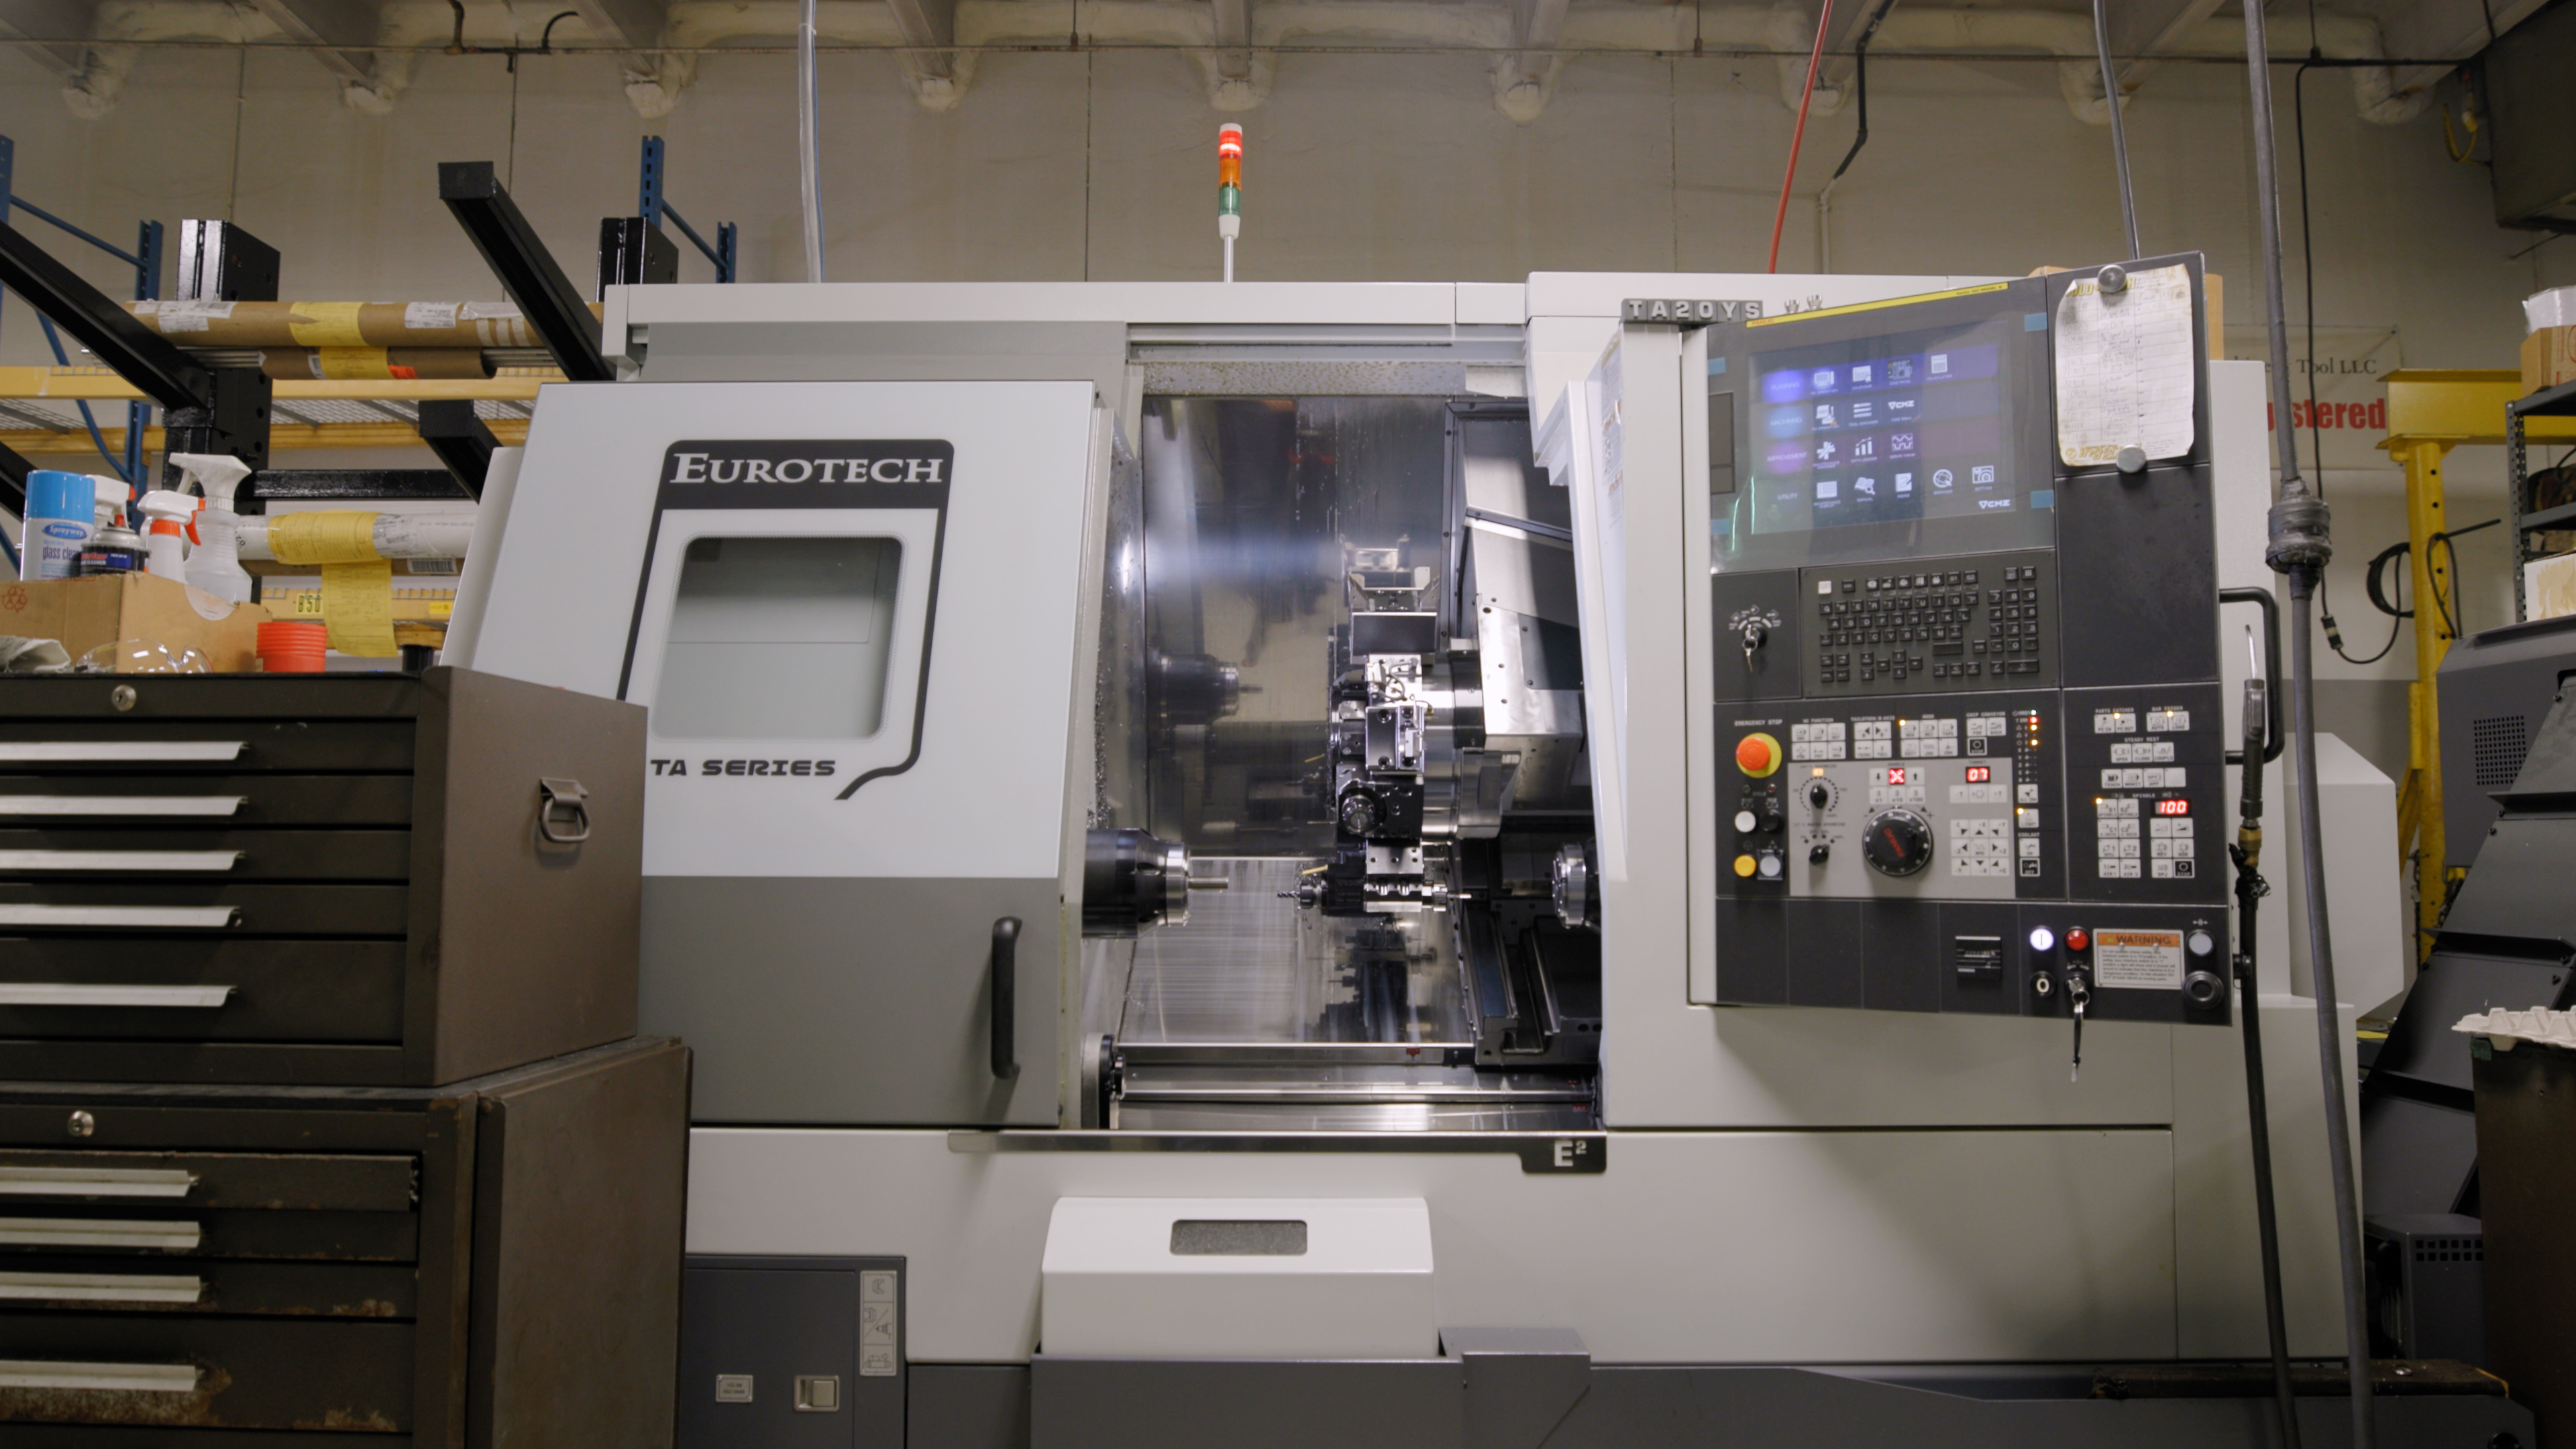 Check out the company's new Eurotech CMZ TA20 which allows for six-axis turning of cylindrical parts.